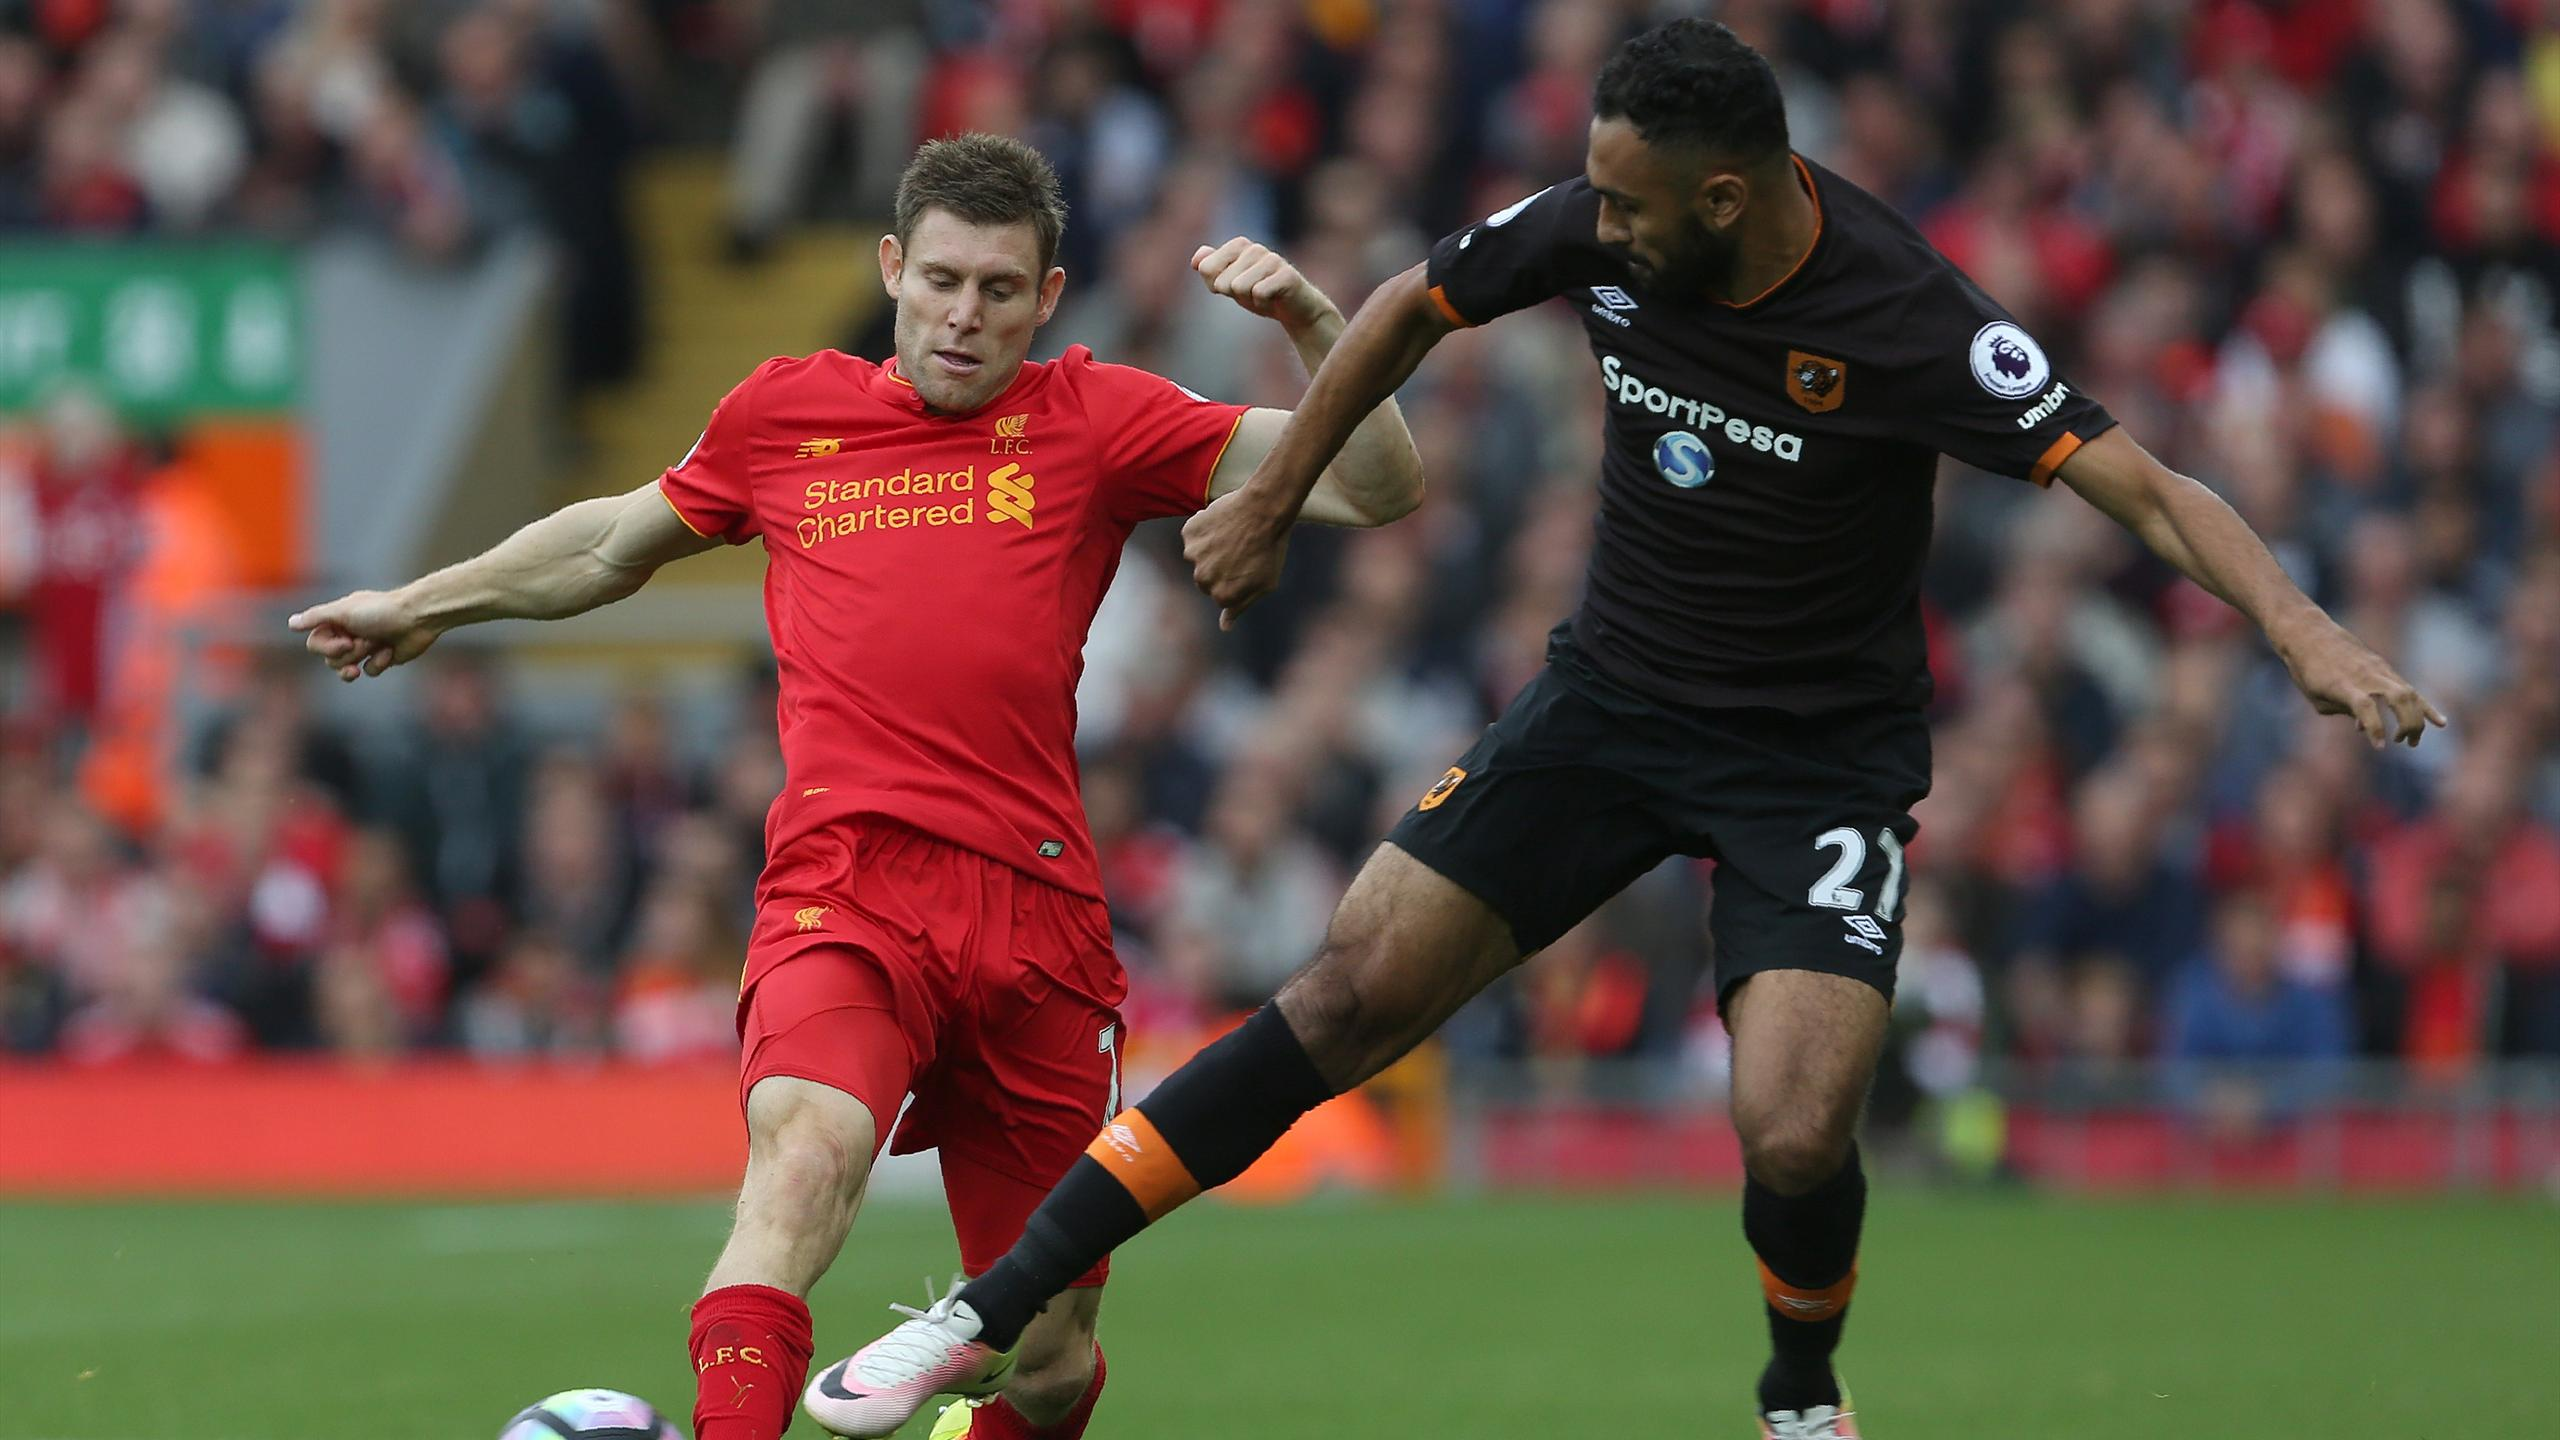 Liverpool's English midfielder James Milner (L) vies with Hull City's Egyptian midfielder Ahmed Elmohamady